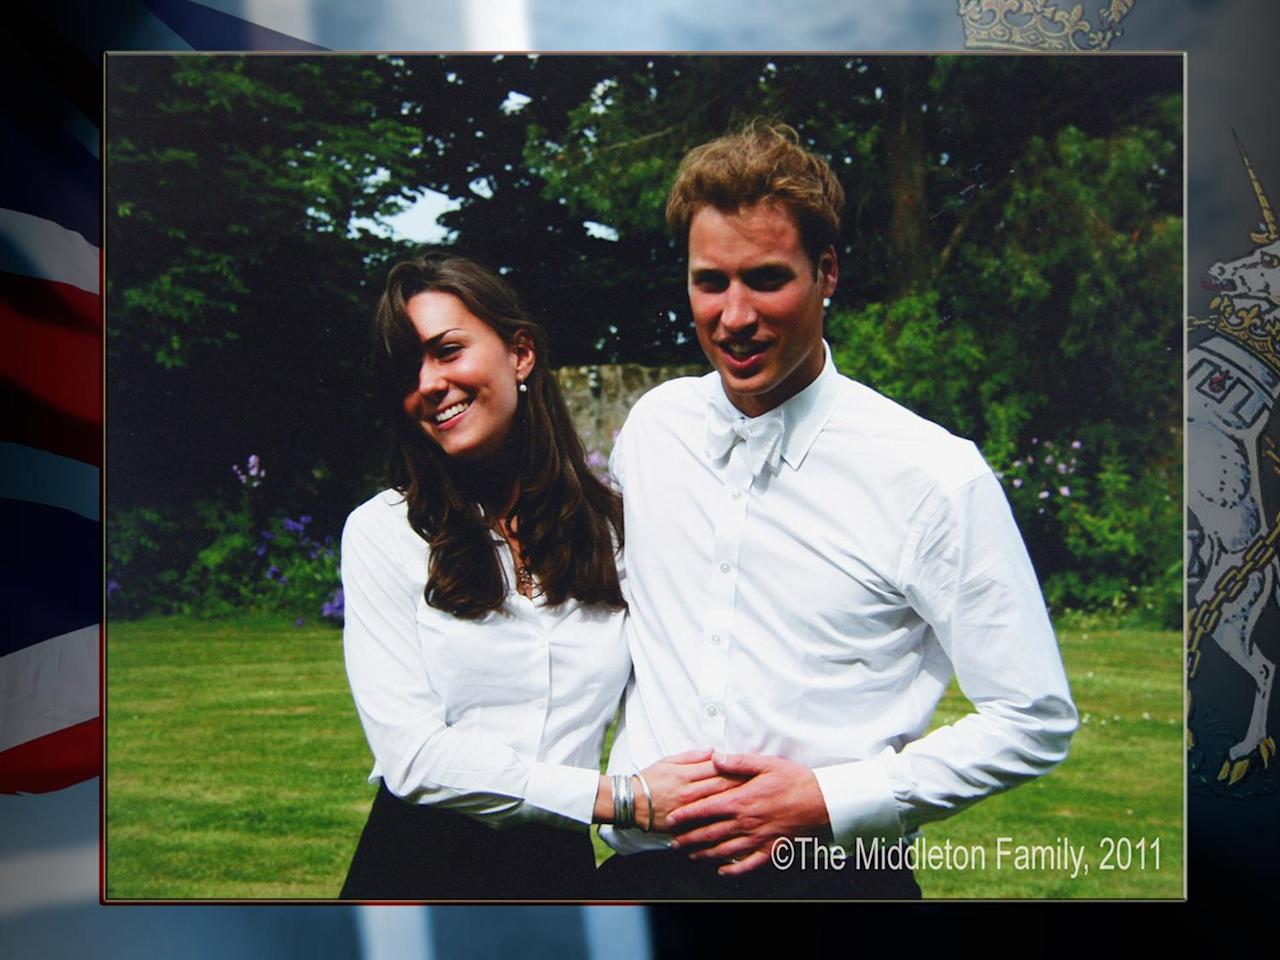 Image made available by The Middleton Family shows Britain's Prince William and Kate Middleton together following their graduation from St. Andrews University, Scotland, on texture, partial graphic